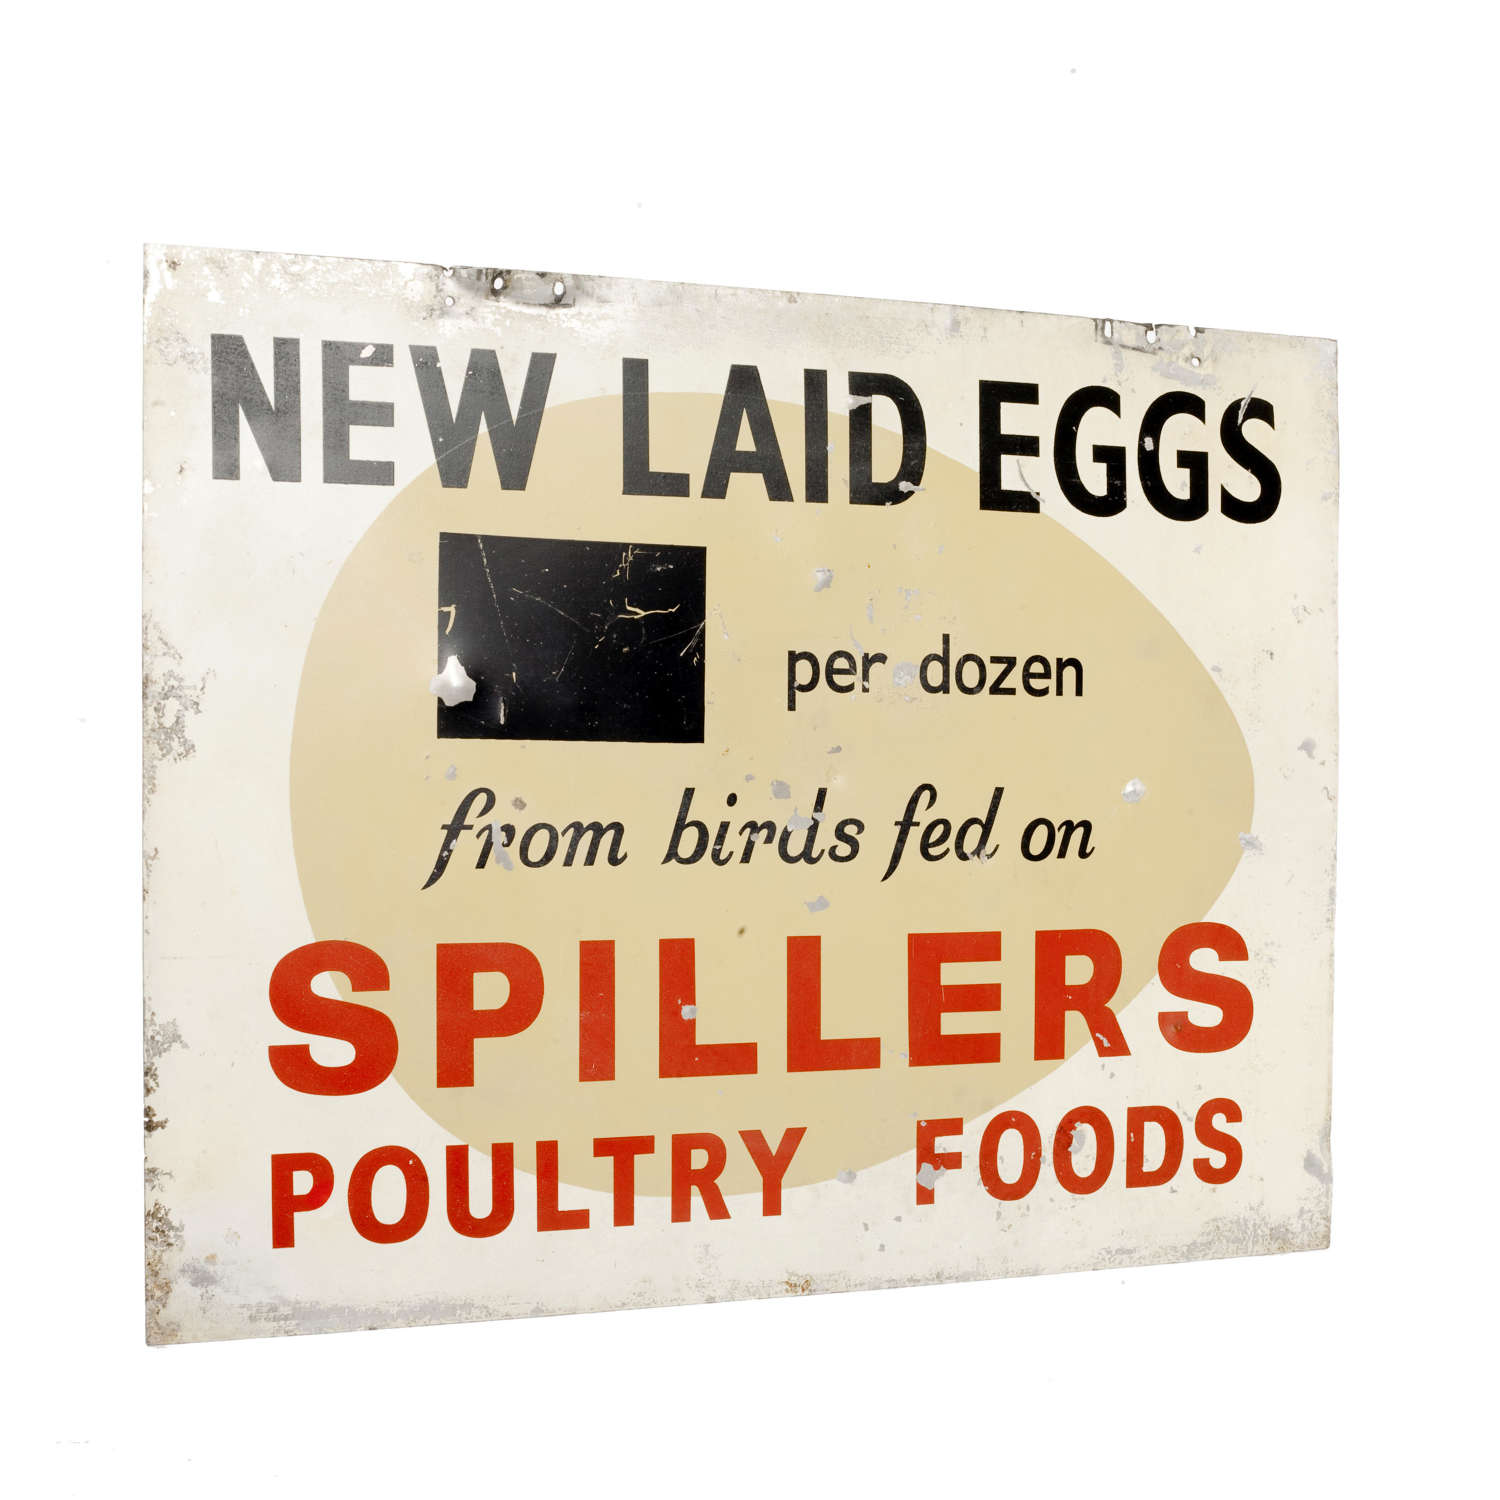 Original Spillers Poultry Foods advertising sign